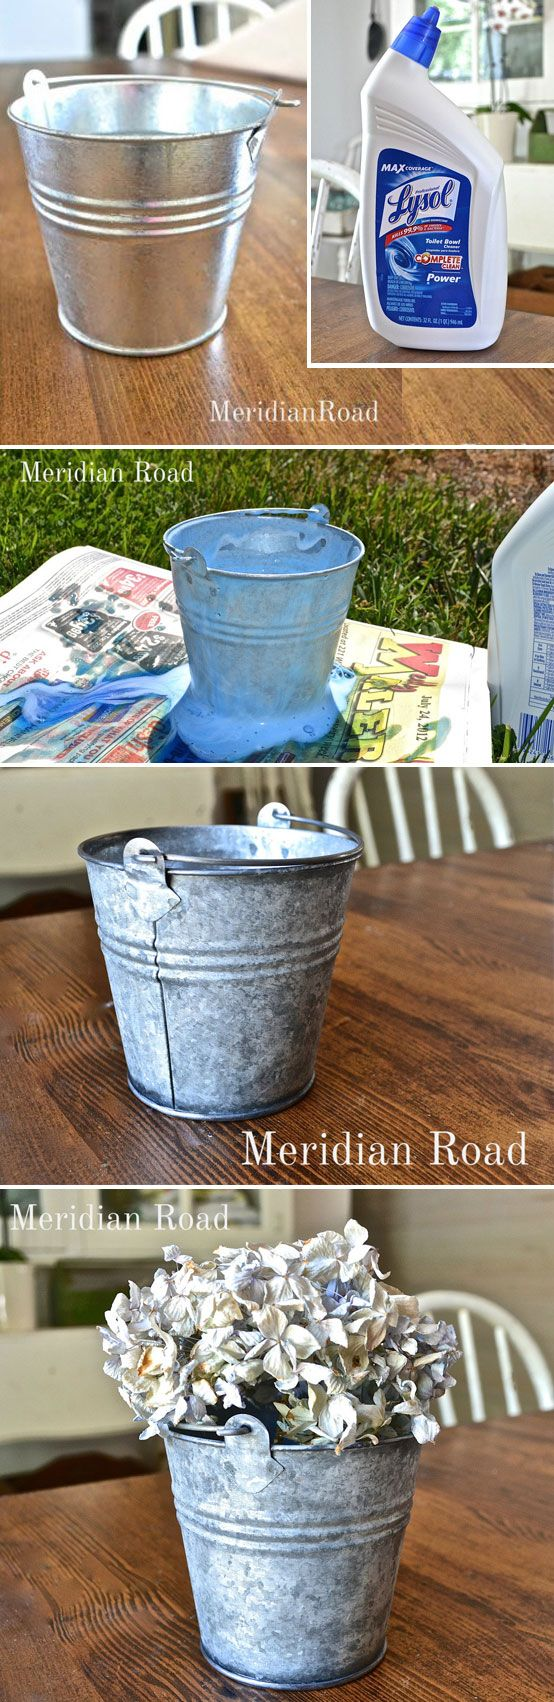 14 Genius Ways To Repurpose Galvanized Buckets And Tubs: Aging GALVANIZED METAL With...Lysol Toilet Bowl Cleaner